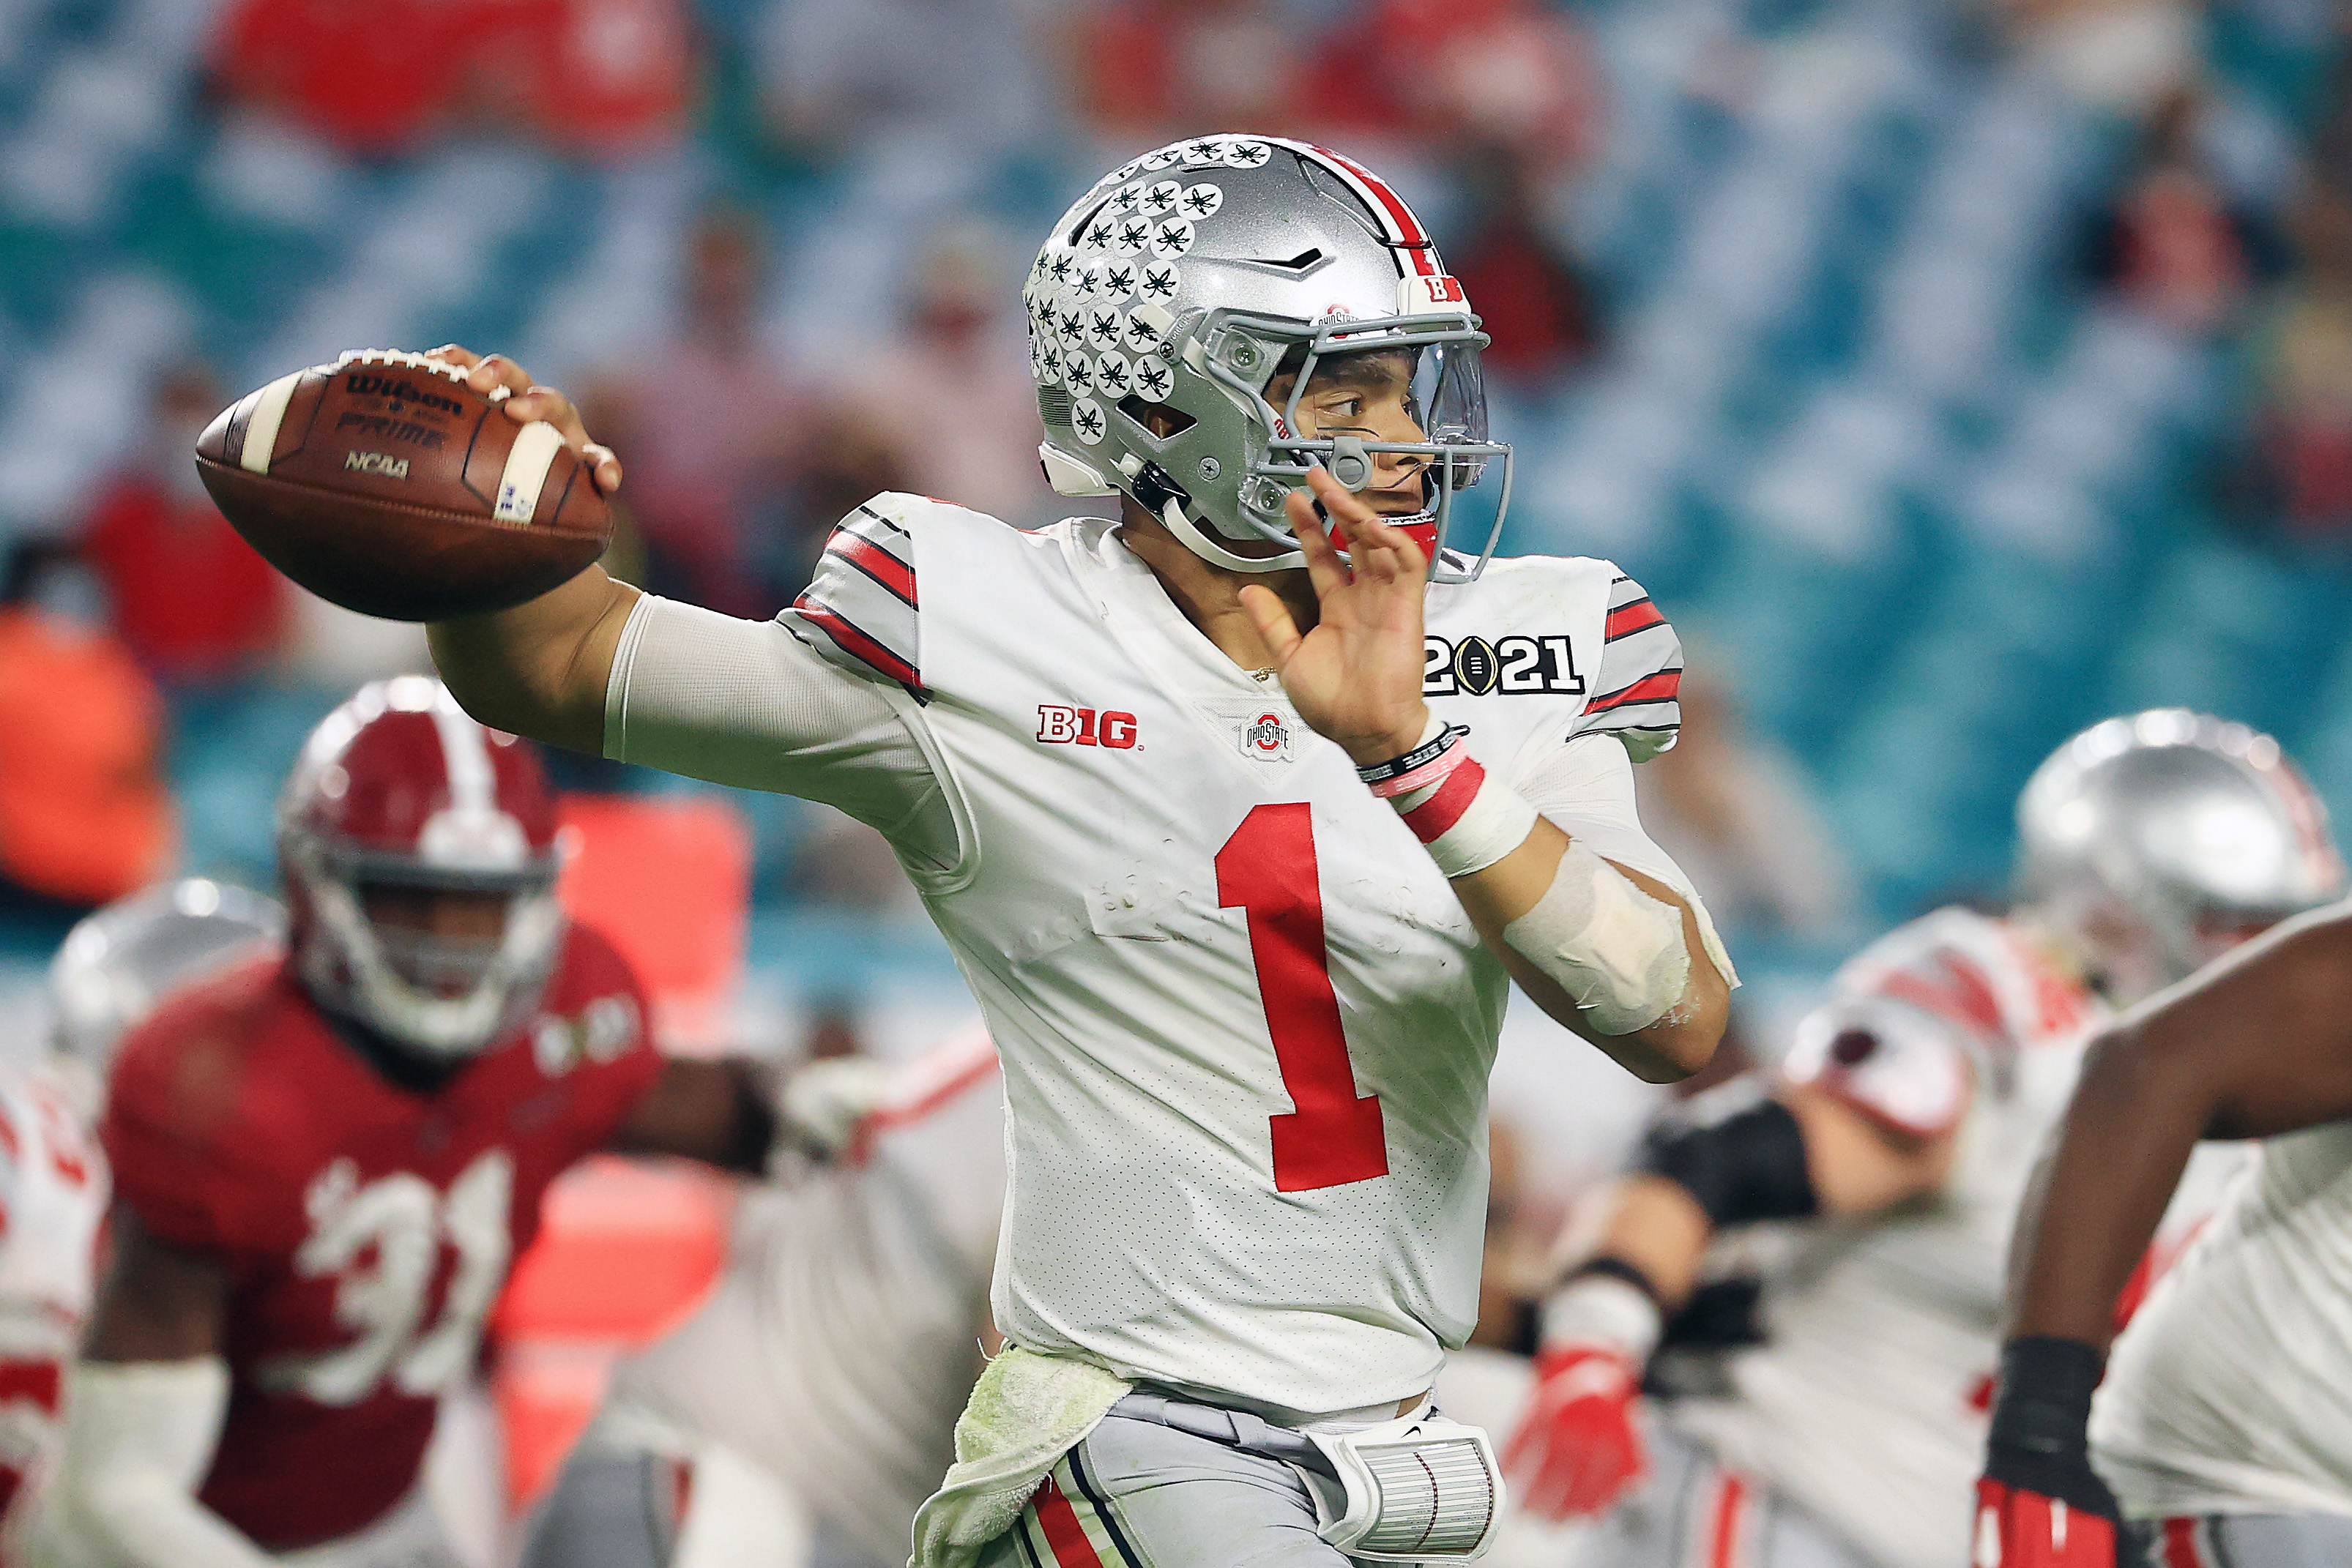 Justin Fields #1 of the Ohio State Buckeyes looks to pass during the fourth quarter of the College Football Playoff National Championship game against the Alabama Crimson Tide at Hard Rock Stadium on January 11, 2021 in Miami Gardens, Florida.